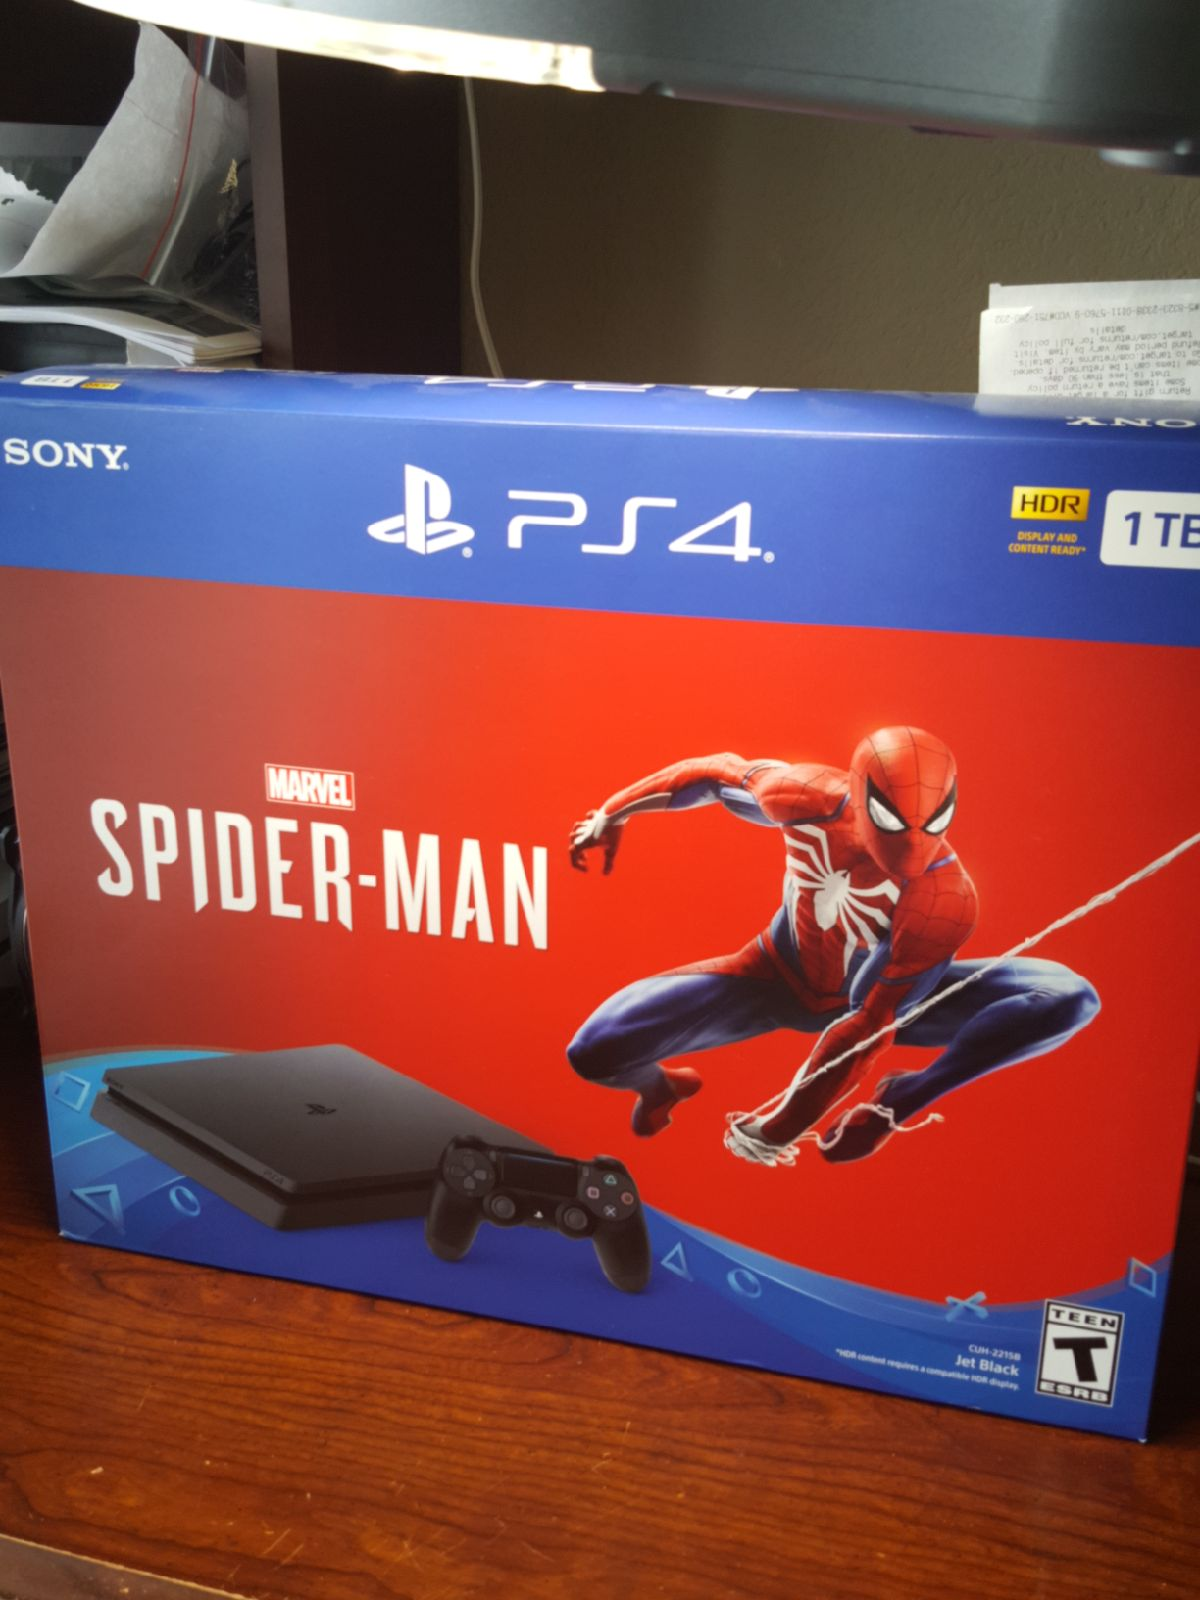 Playstation 4 spider-man bundle